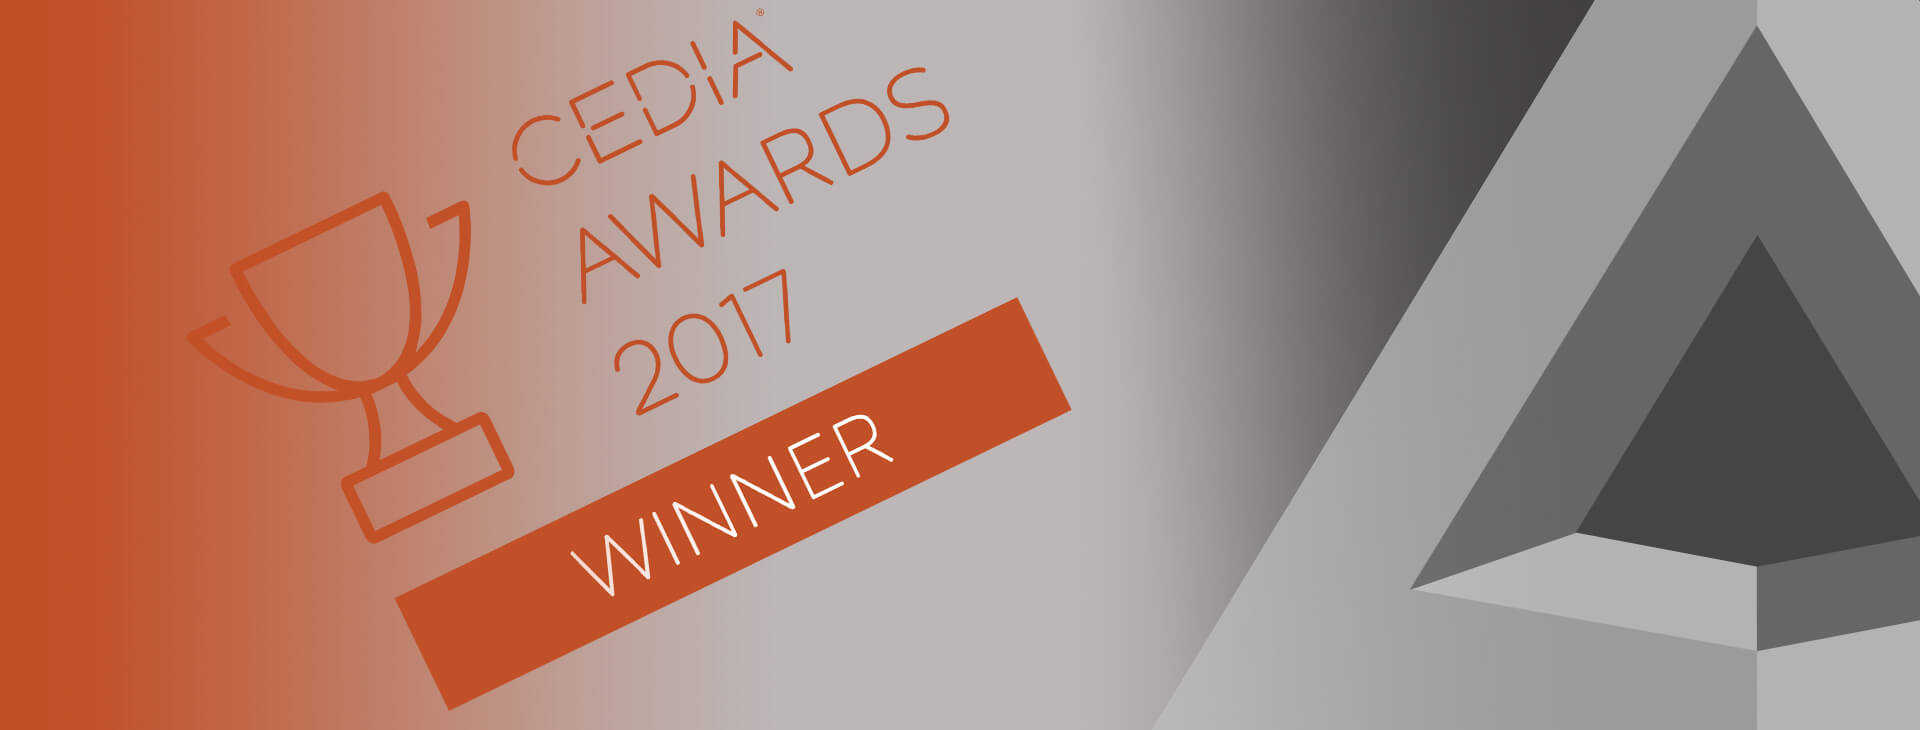 2017 CEDIA AWARDS